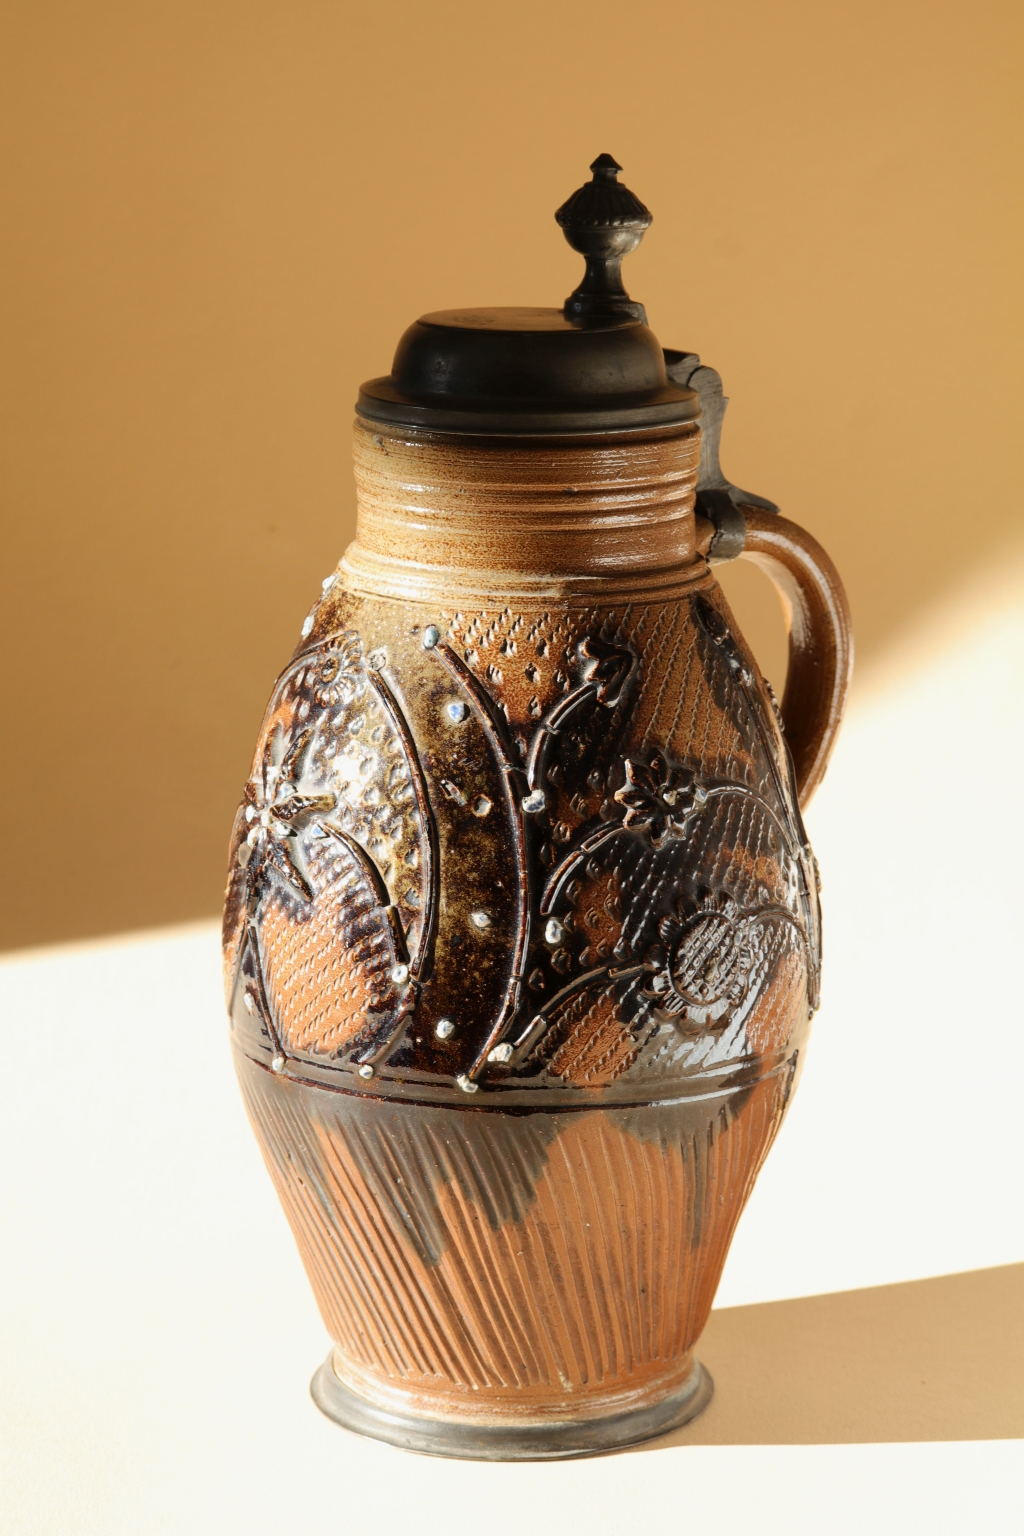 Muskau saltglazed stoneware tankard dated 1811